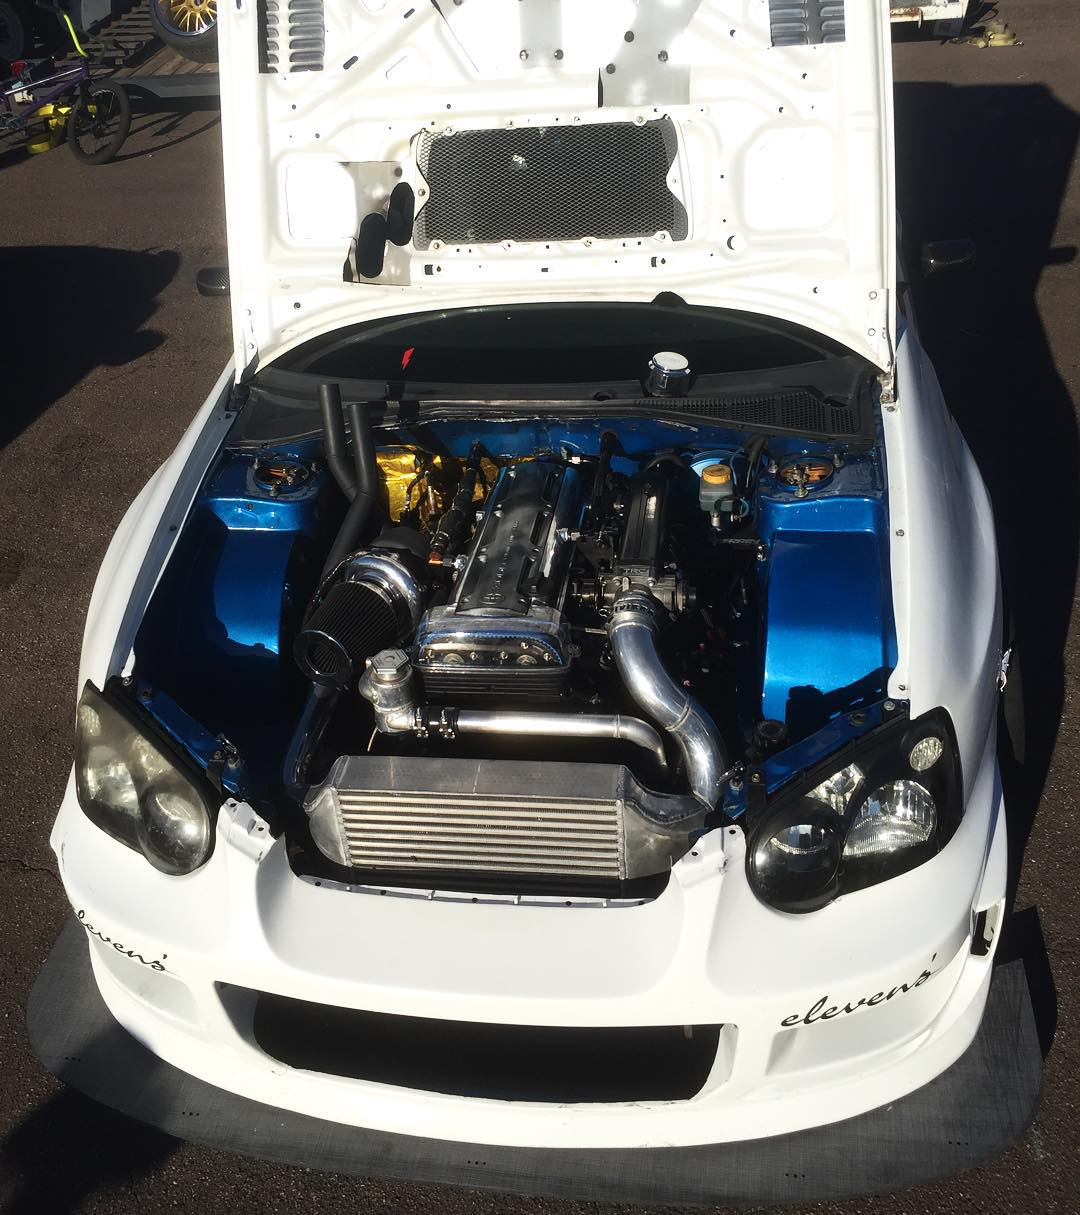 Just in case you didn't believe there was a 2JZ in that STI we showed you earlier. Yay or nay?#SupportHooniganism